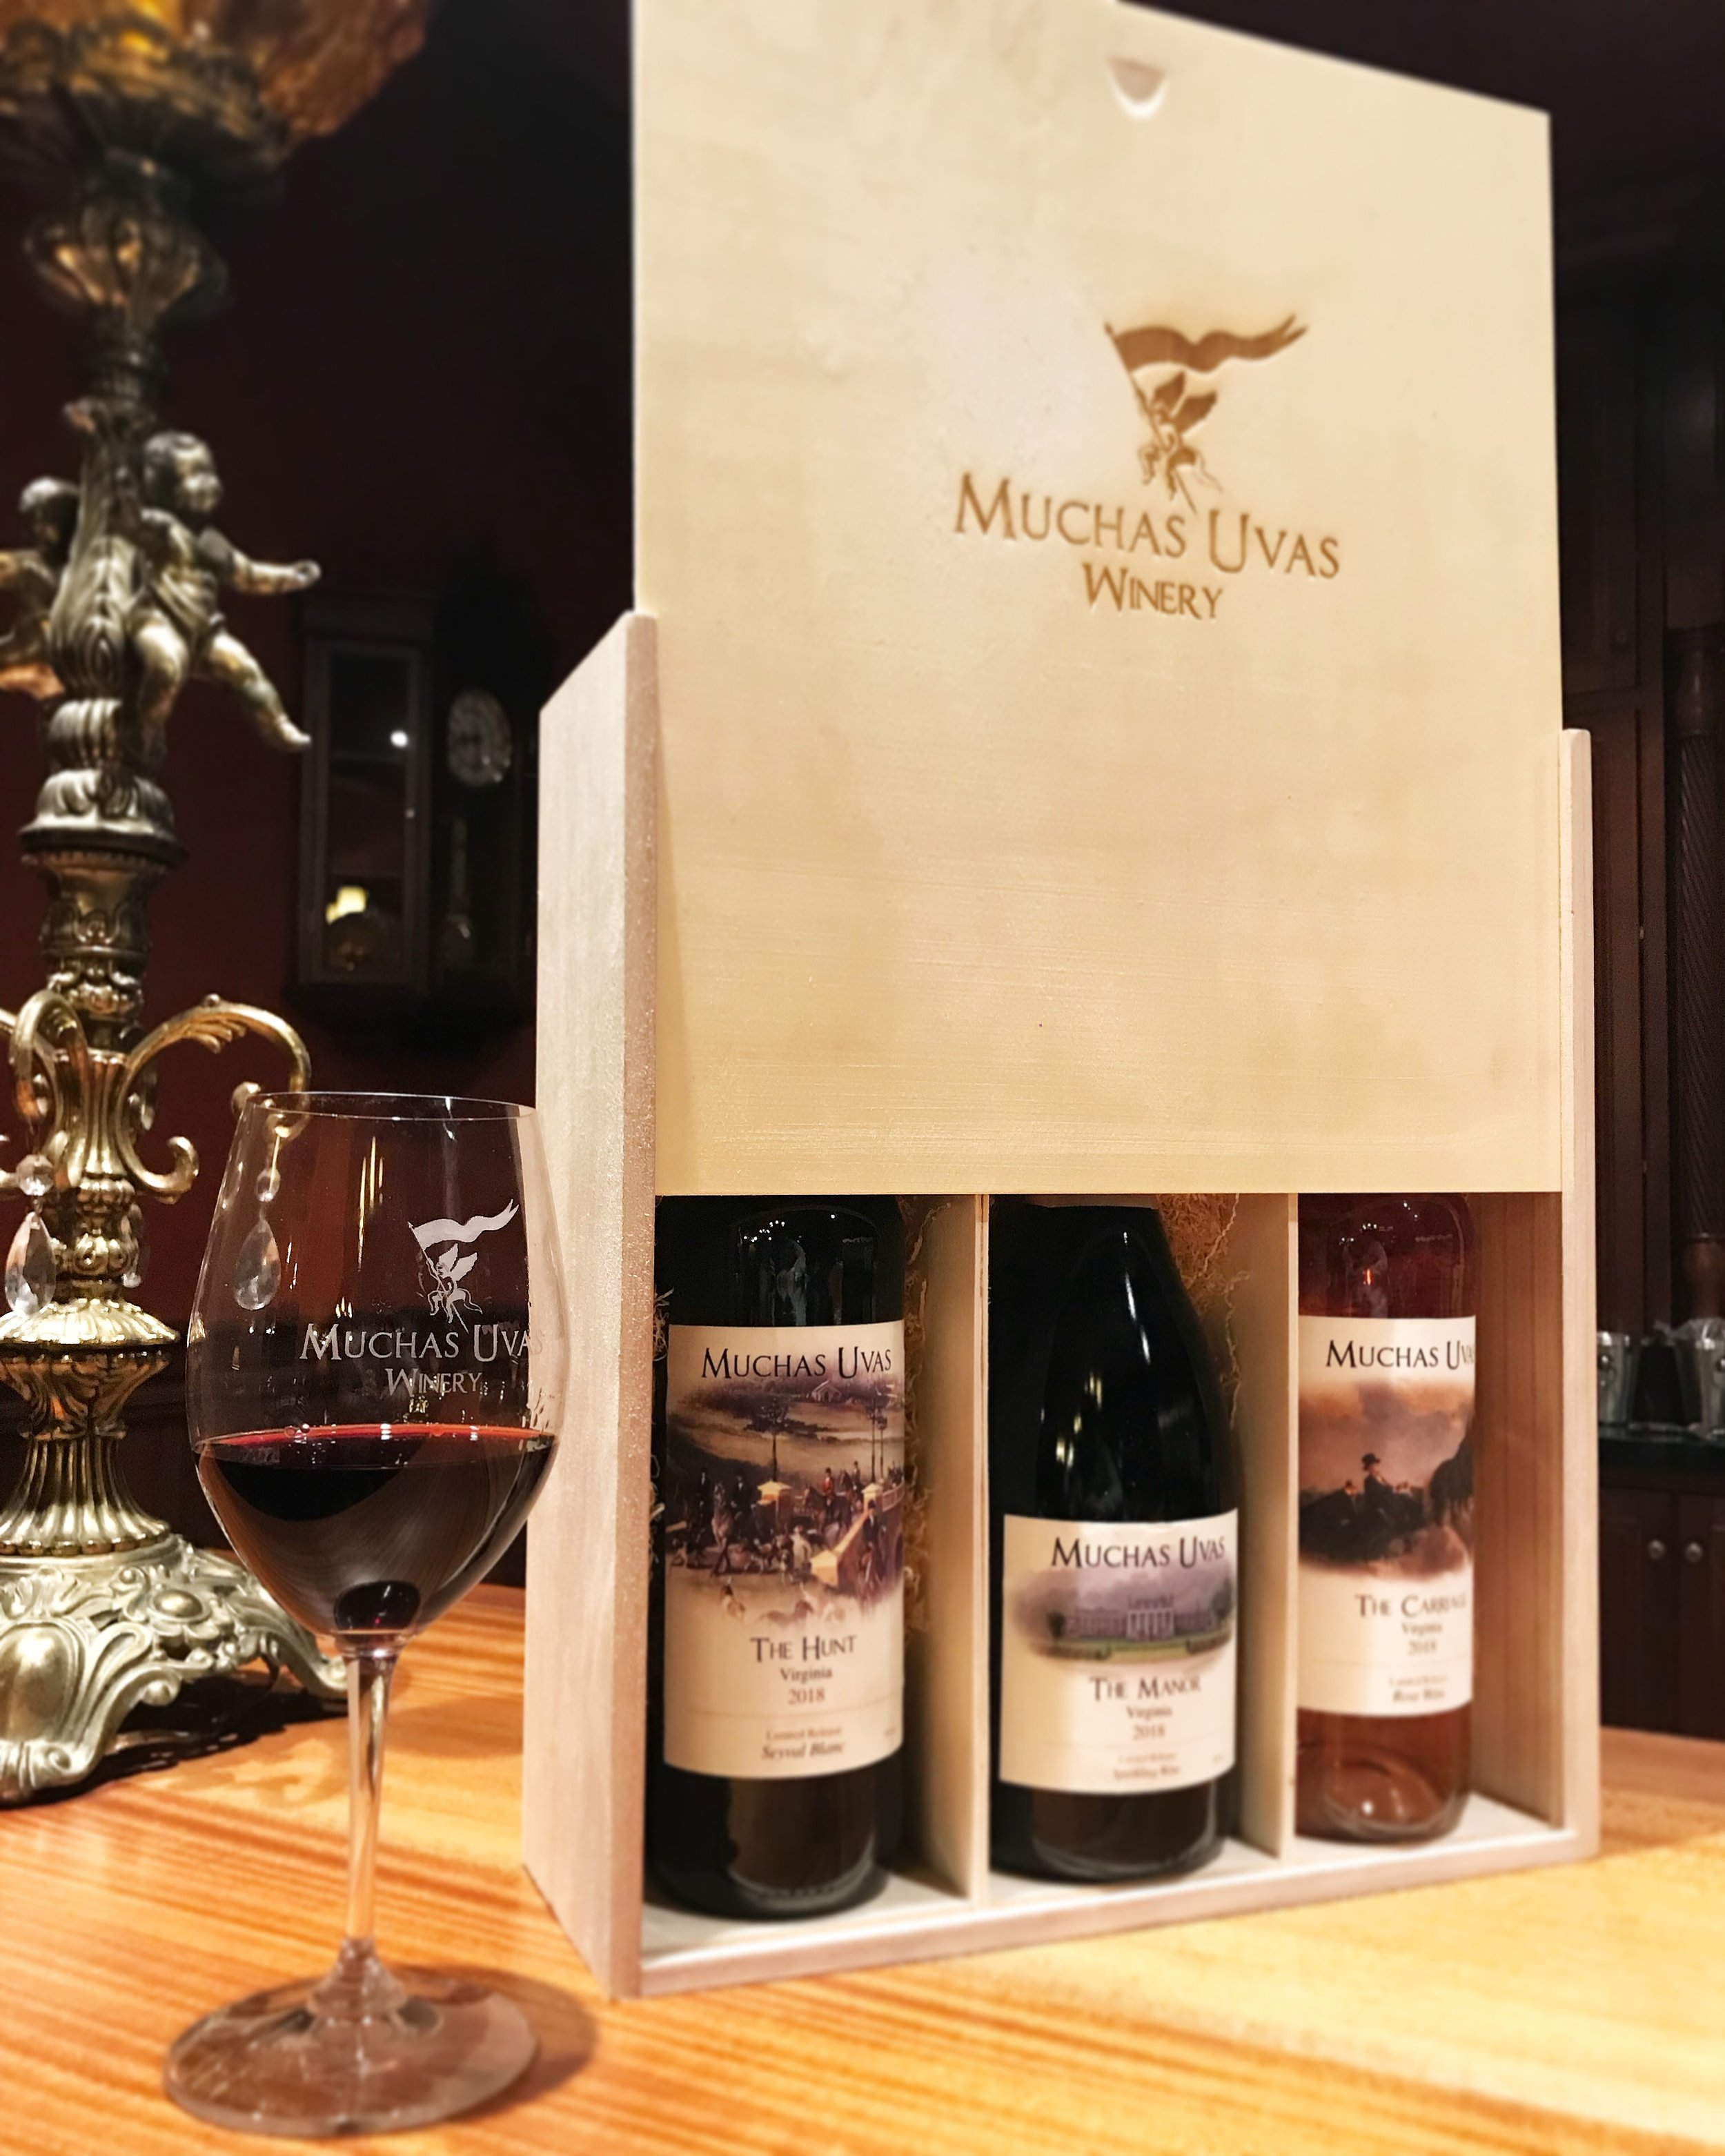 Wooden box with 3 wines $140 - These 3 wines will be available on May 11th, 2019